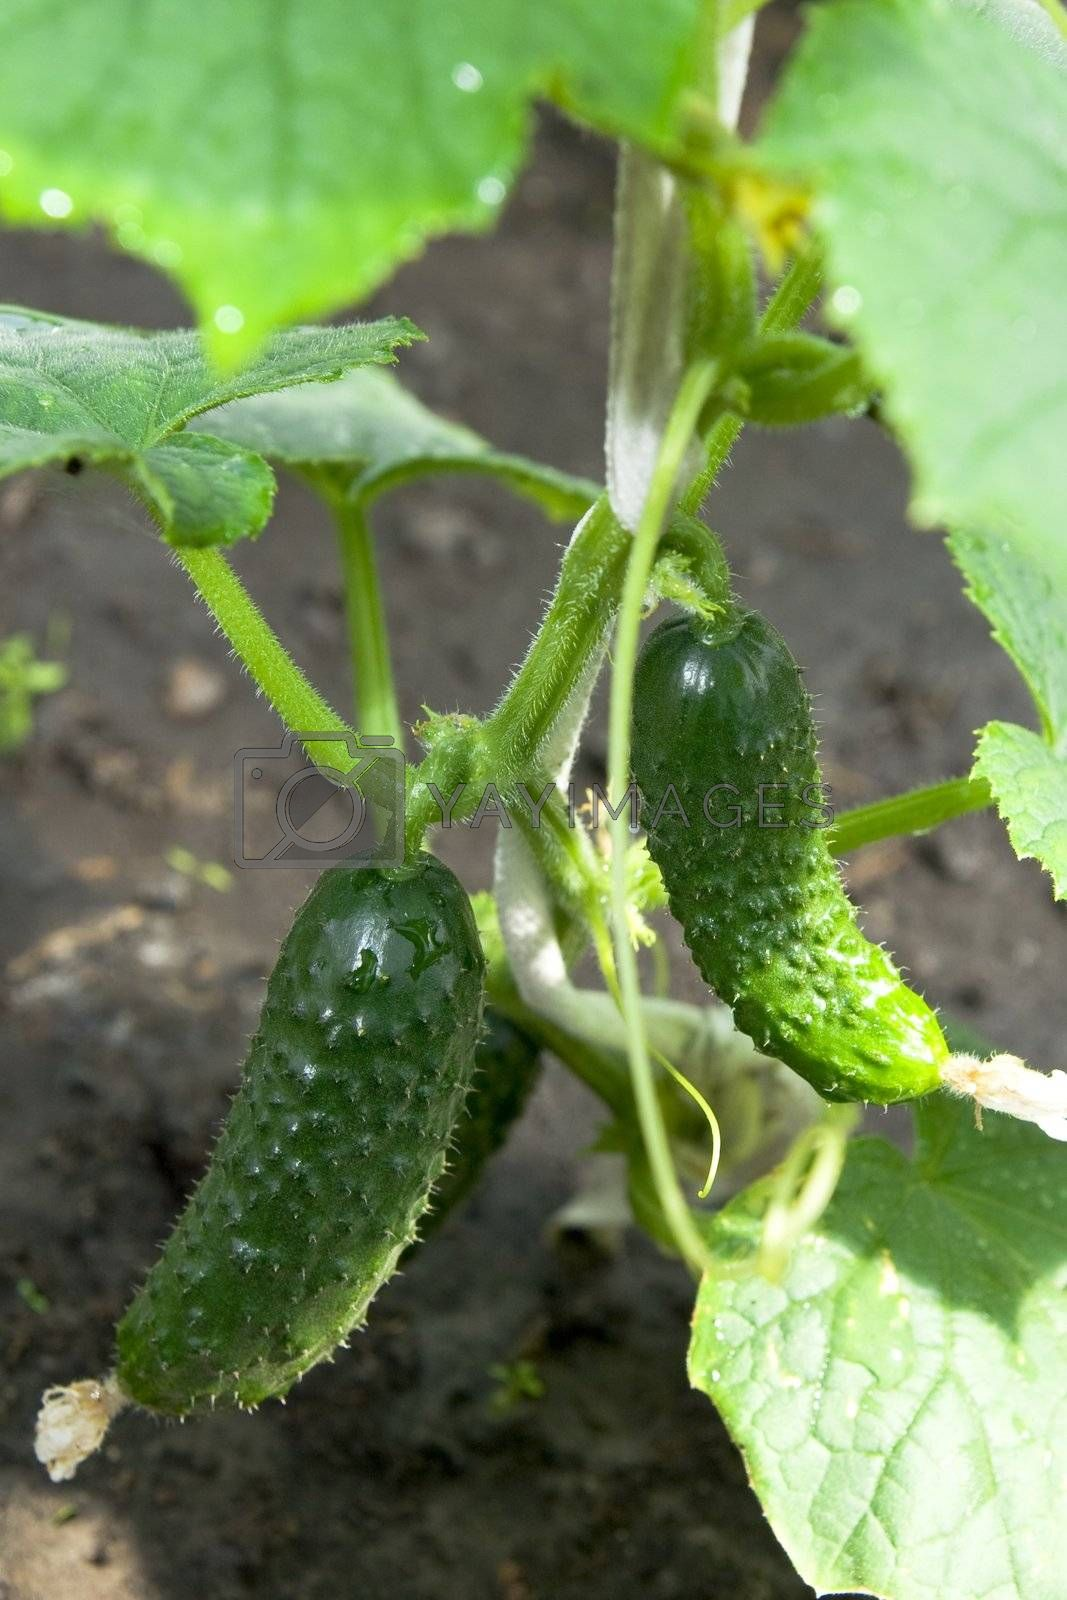 Green Cucumber on the vine